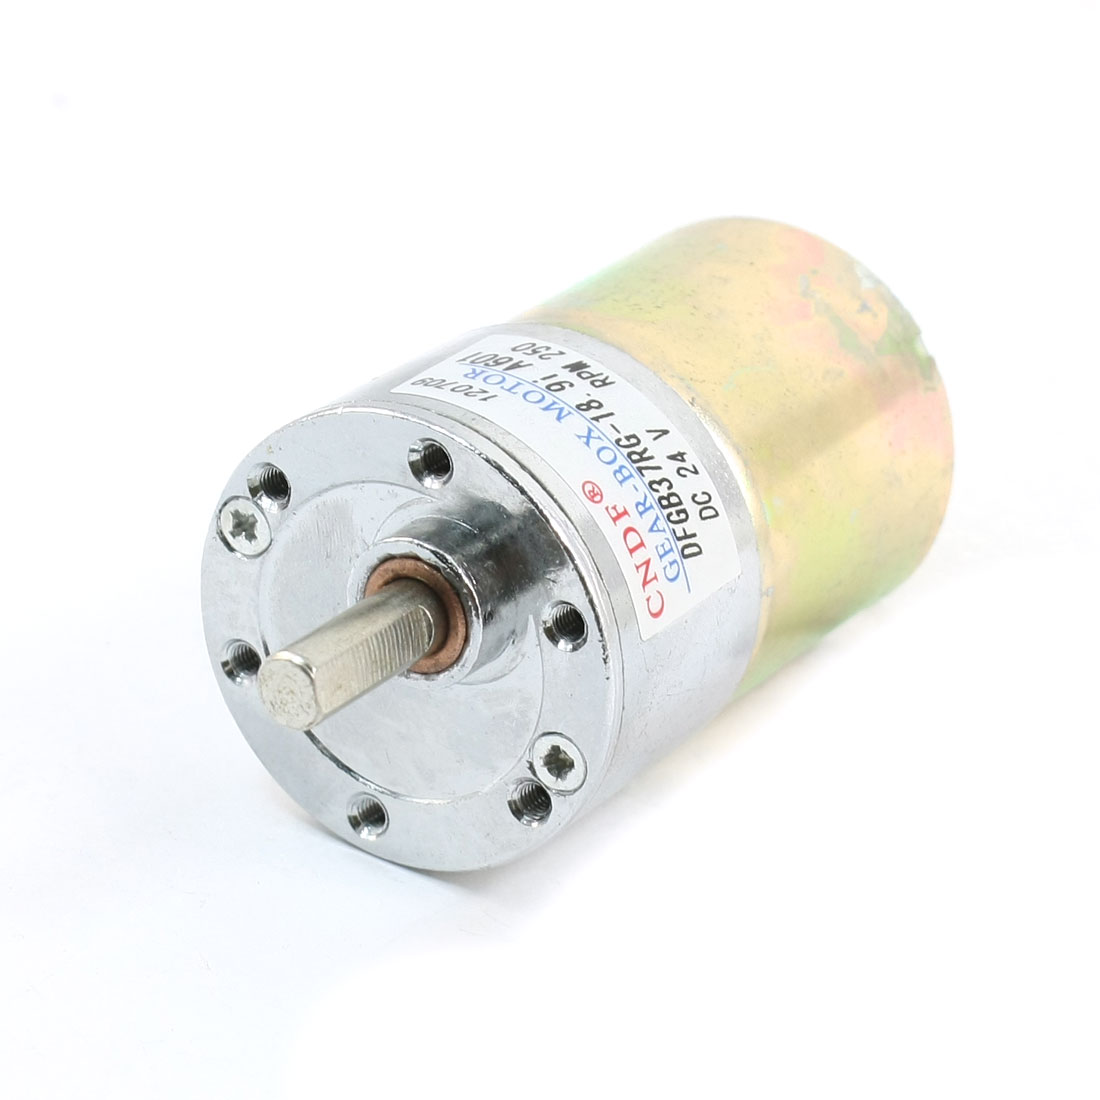 DFGB37RG-18.9i Cylinder Shape DC24V Speed 250RPM Geared Motor